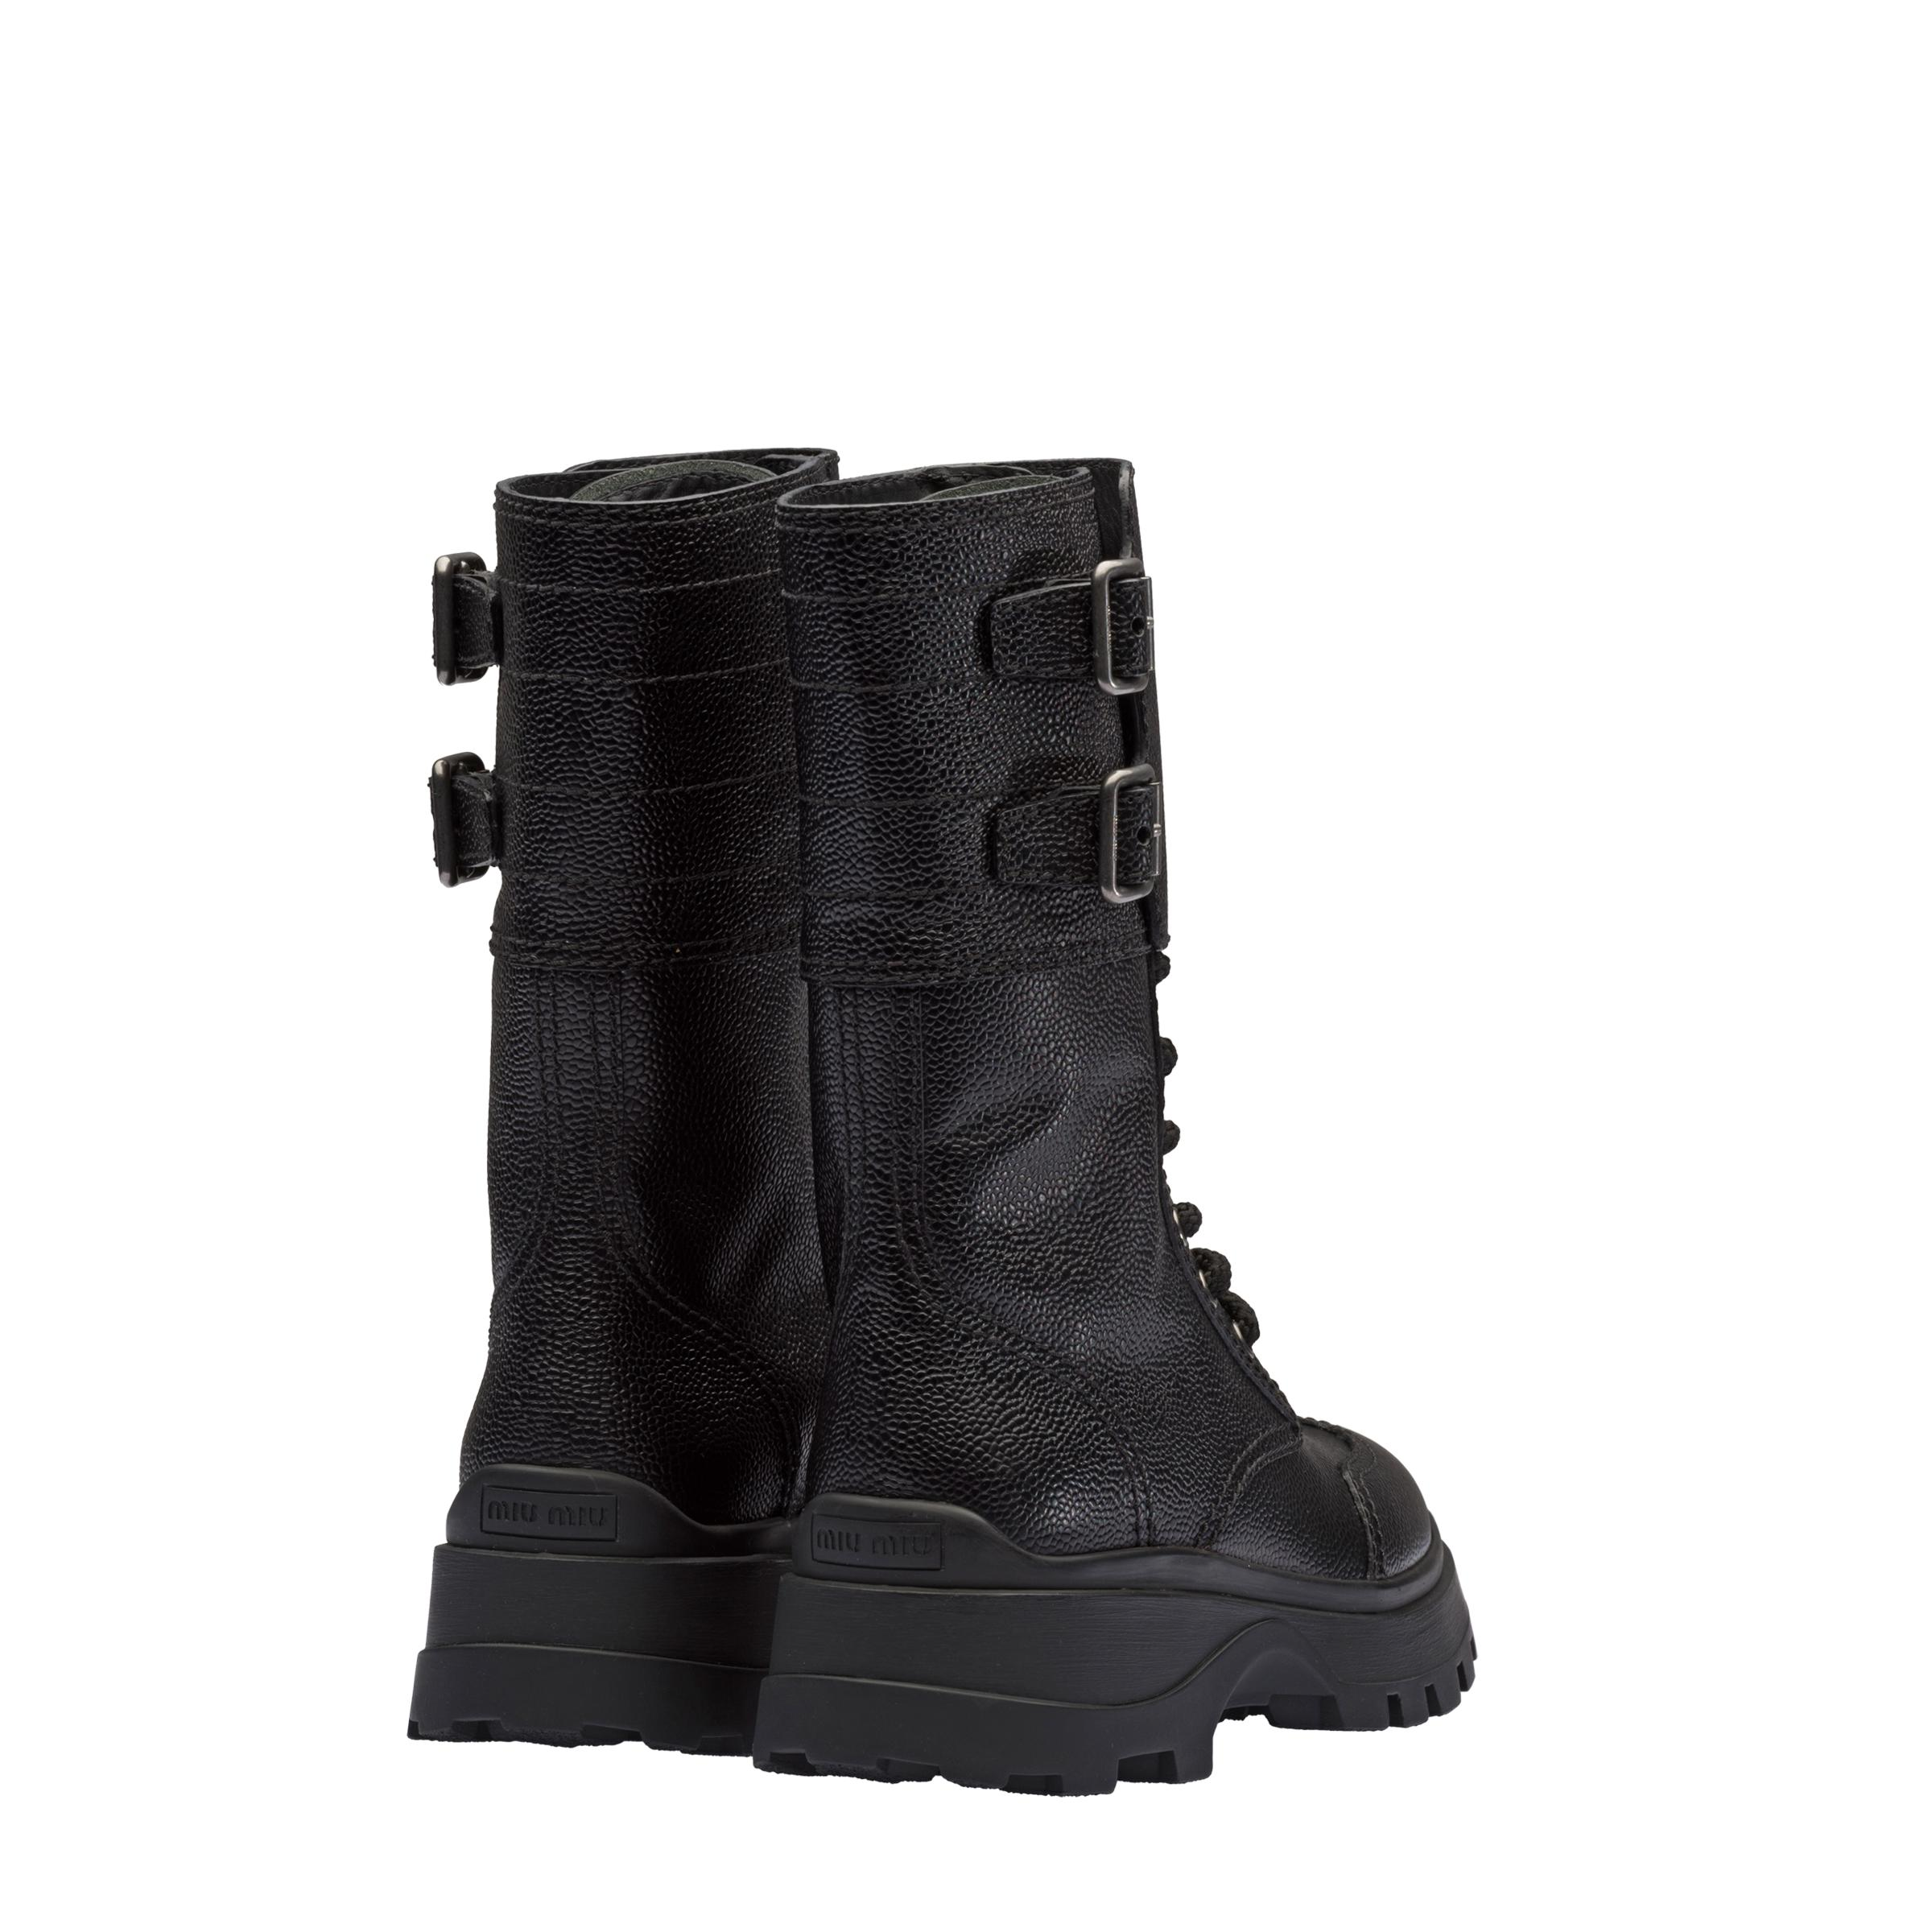 Leather Booties Women Black Size 35 3